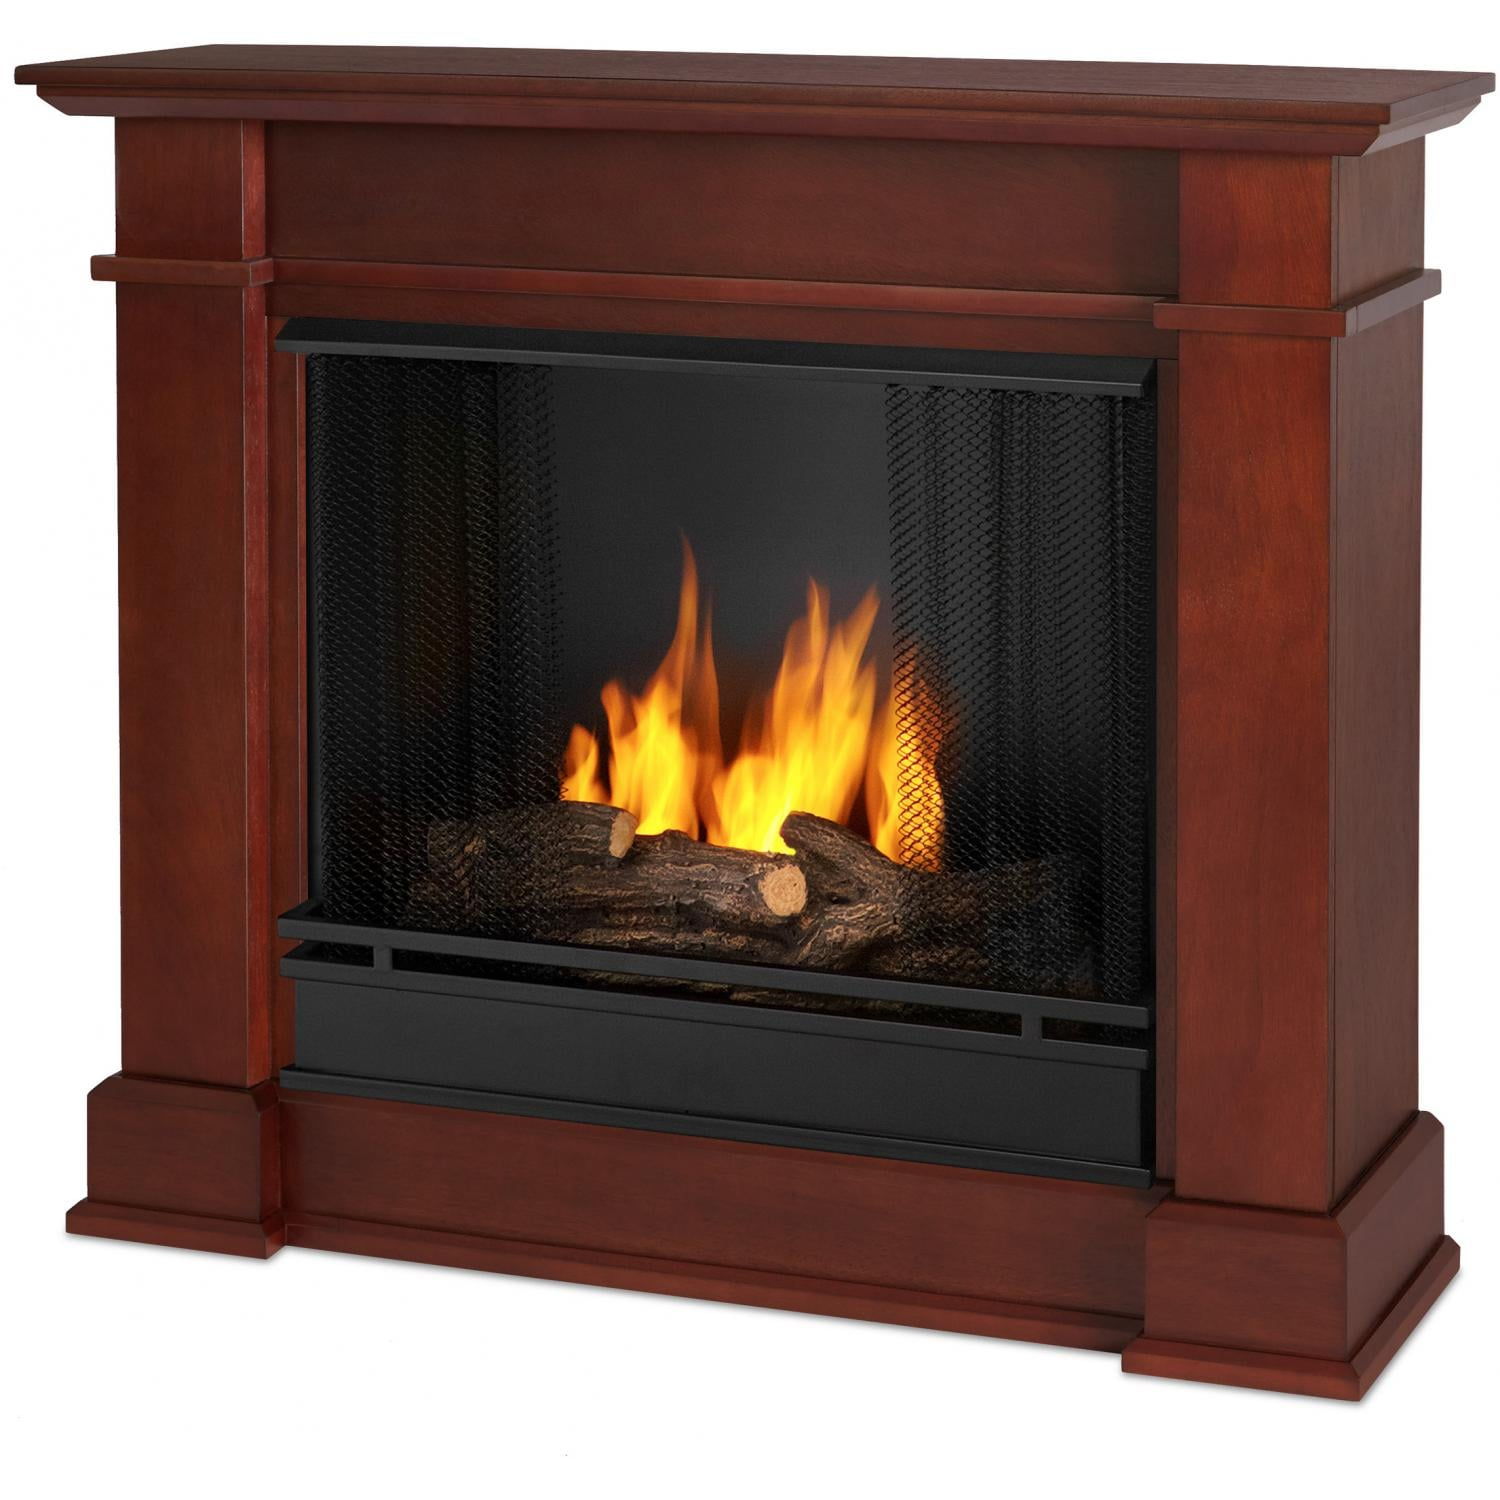 Real flame devin petite 36 inch gel fireplace with mantel for Dark fireplace mantel